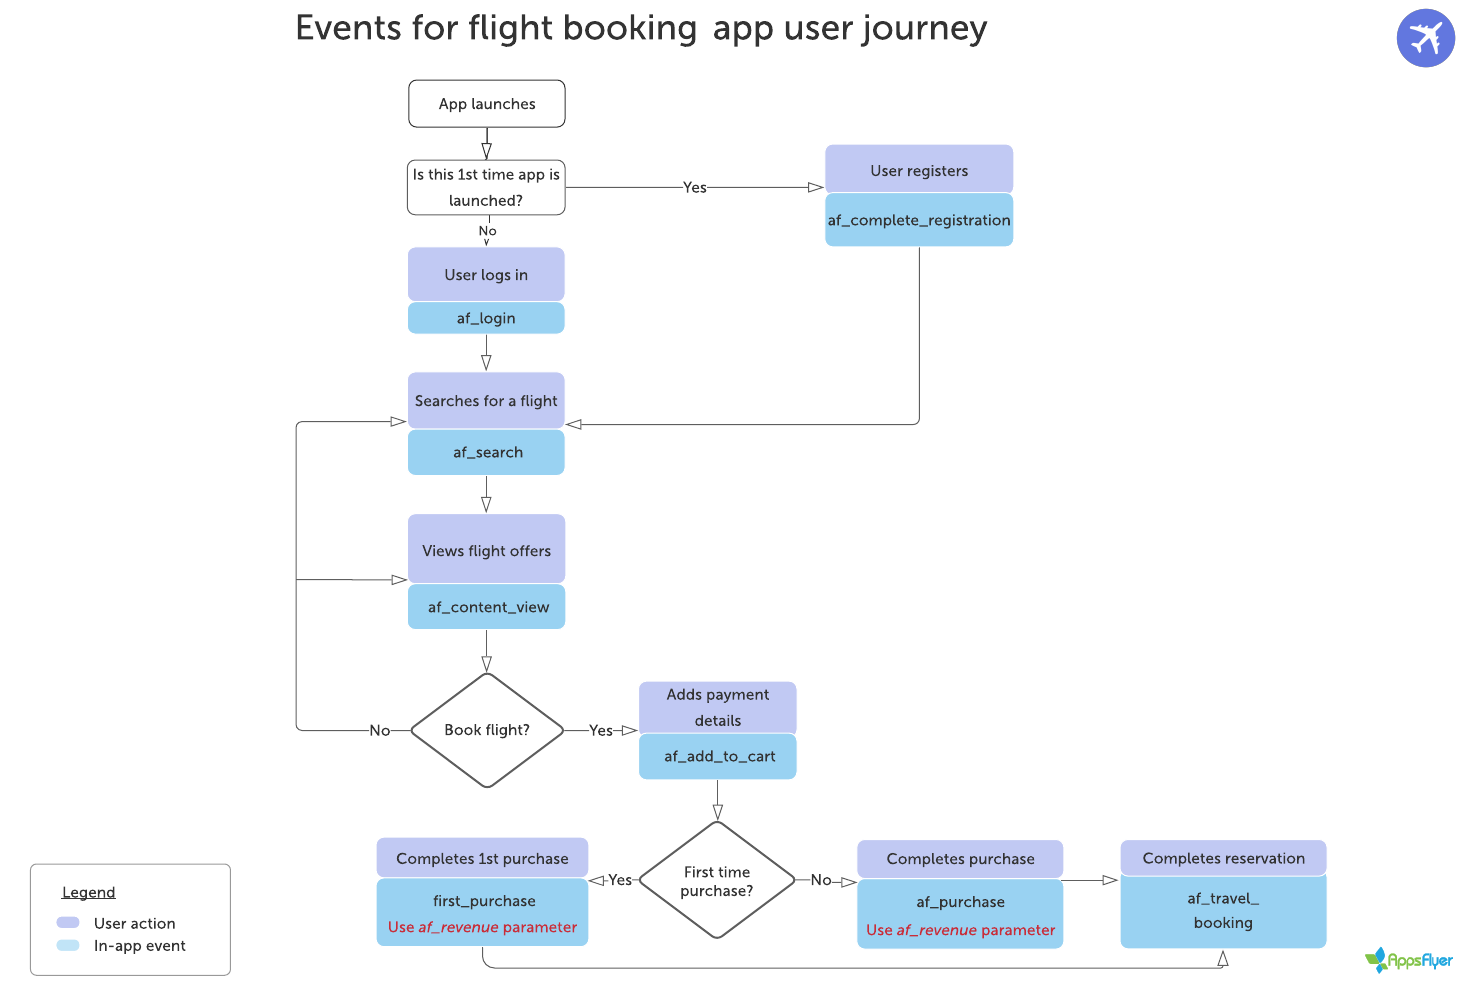 Flowchart_for_recommended_events flight_booking_app_user_journey